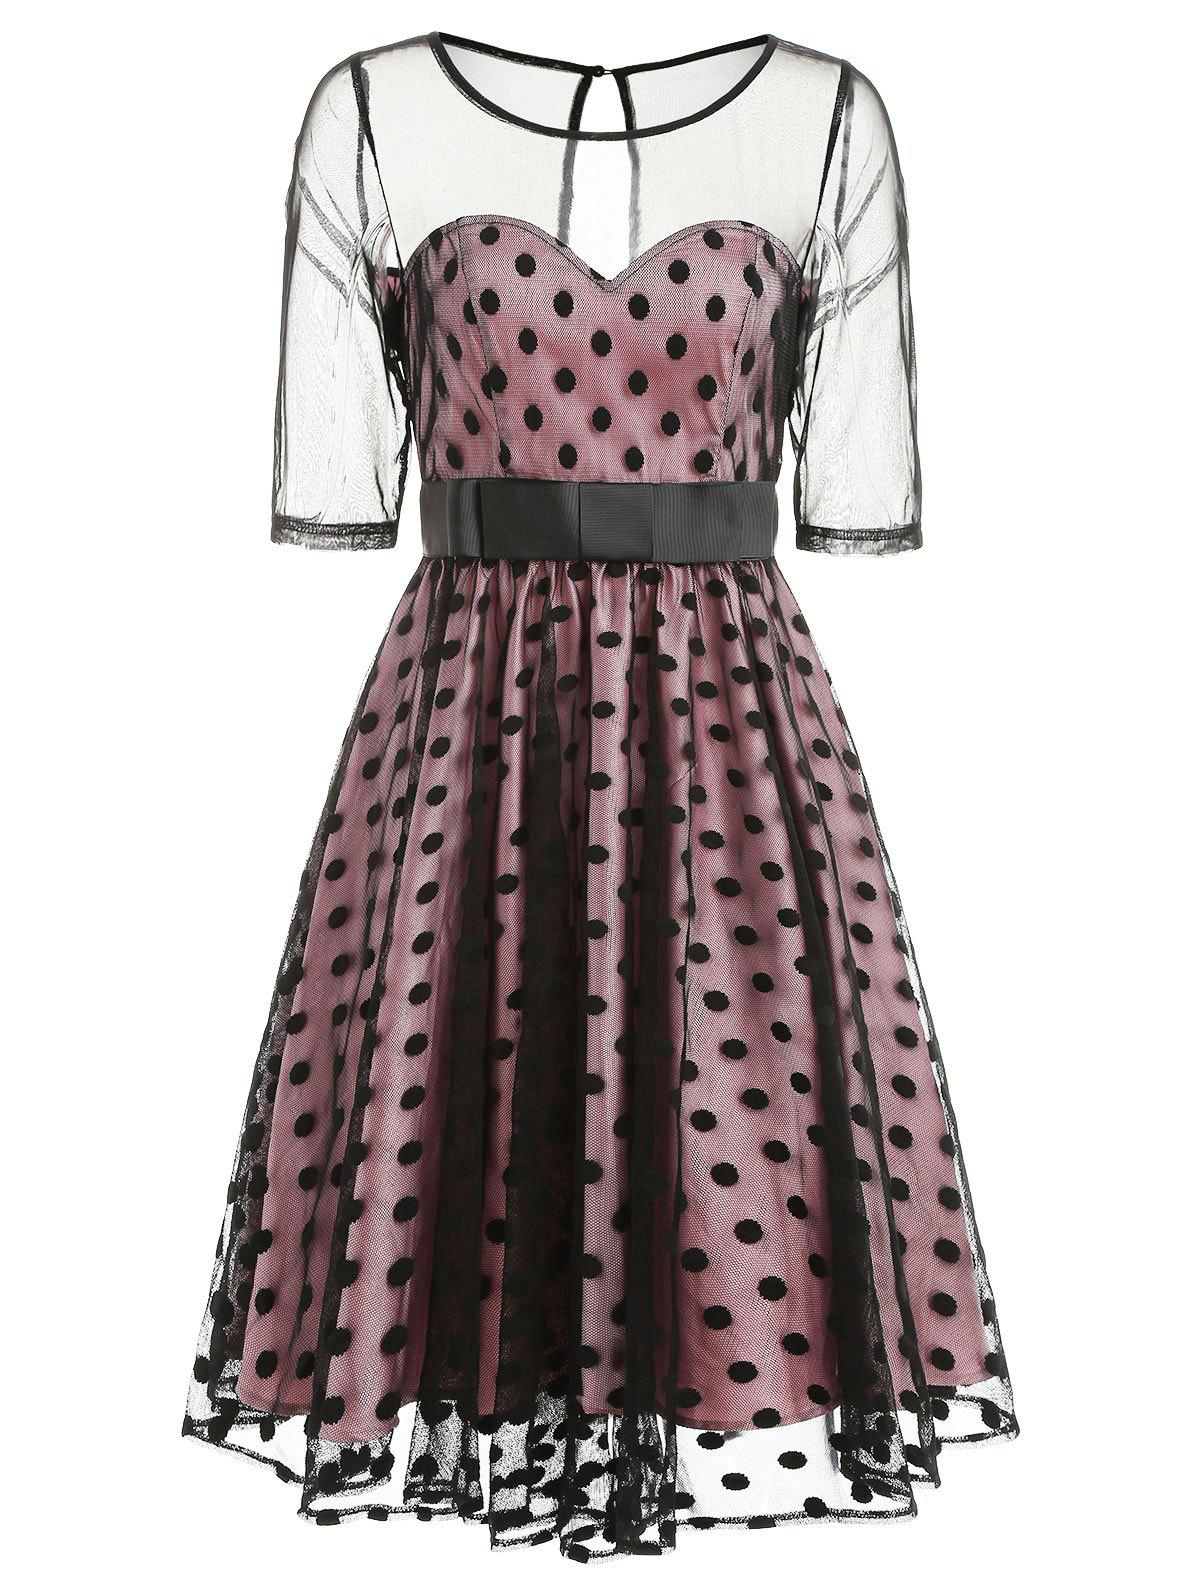 Retro Mesh Panel Polka Dot Flare Dress - BLACK L